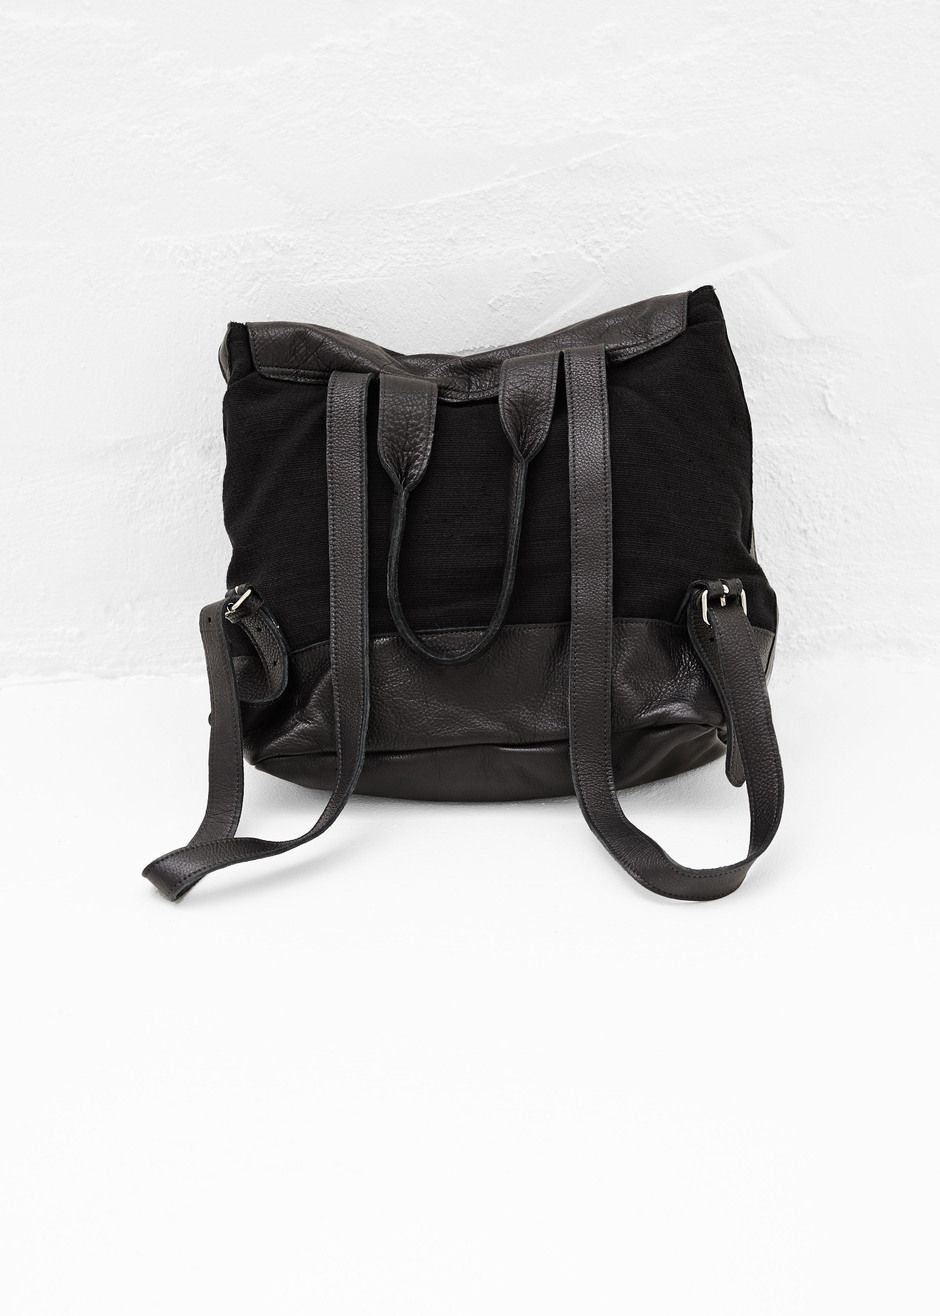 Clyde Canvas   Leather Backpack (Black   Black)  c5a750e859a89